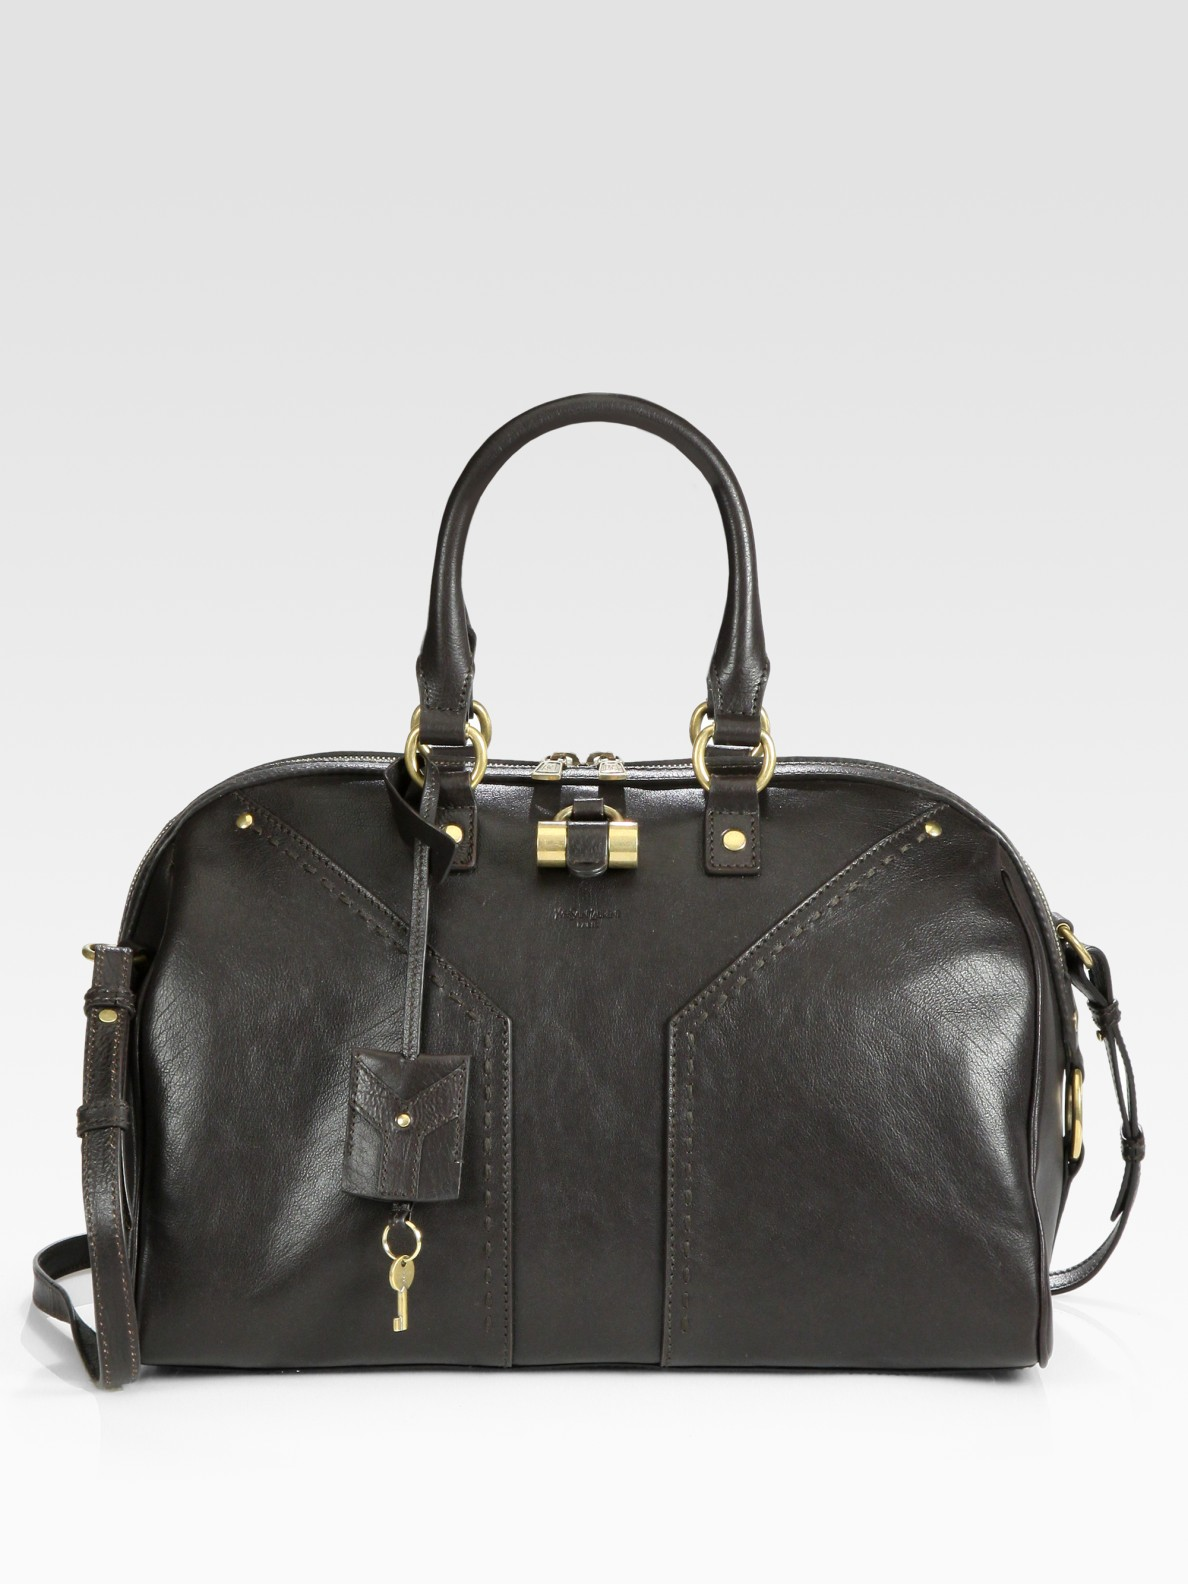 8a08edb40ae6 Lyst saint laurent muse bowling bag in brown jpg 1188x1584 Ysl muse